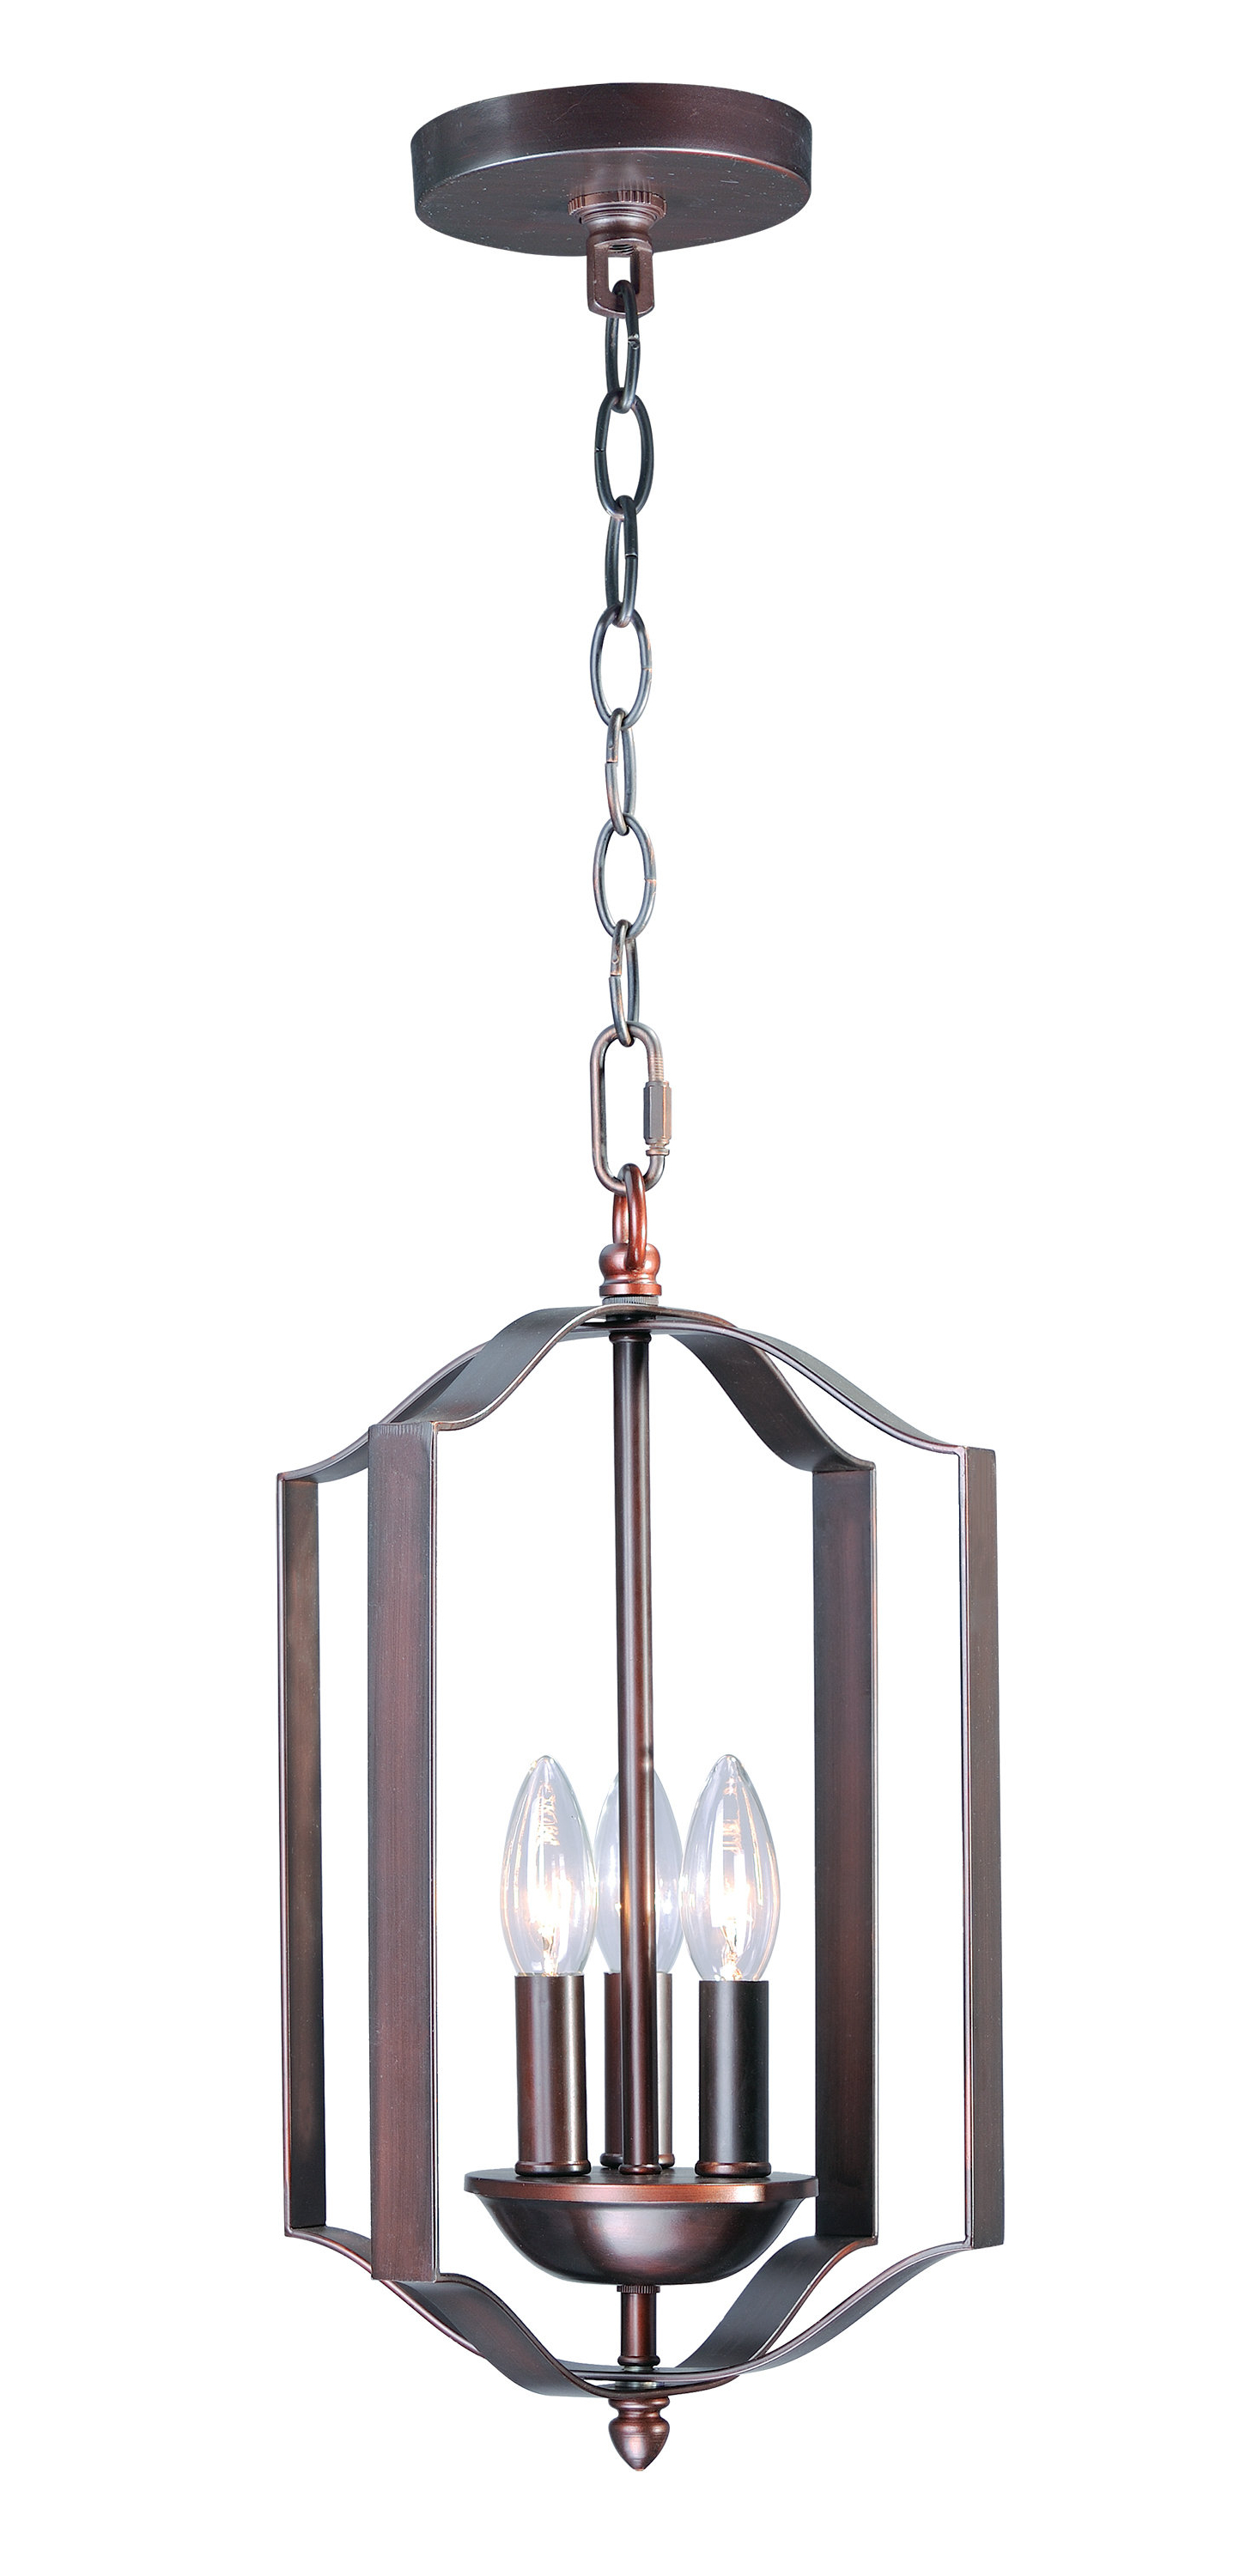 Mielke 3 Light Single Geometric Chandelier Intended For Most Recently Released Akash Industrial Vintage 1 Light Geometric Pendants (Gallery 11 of 20)